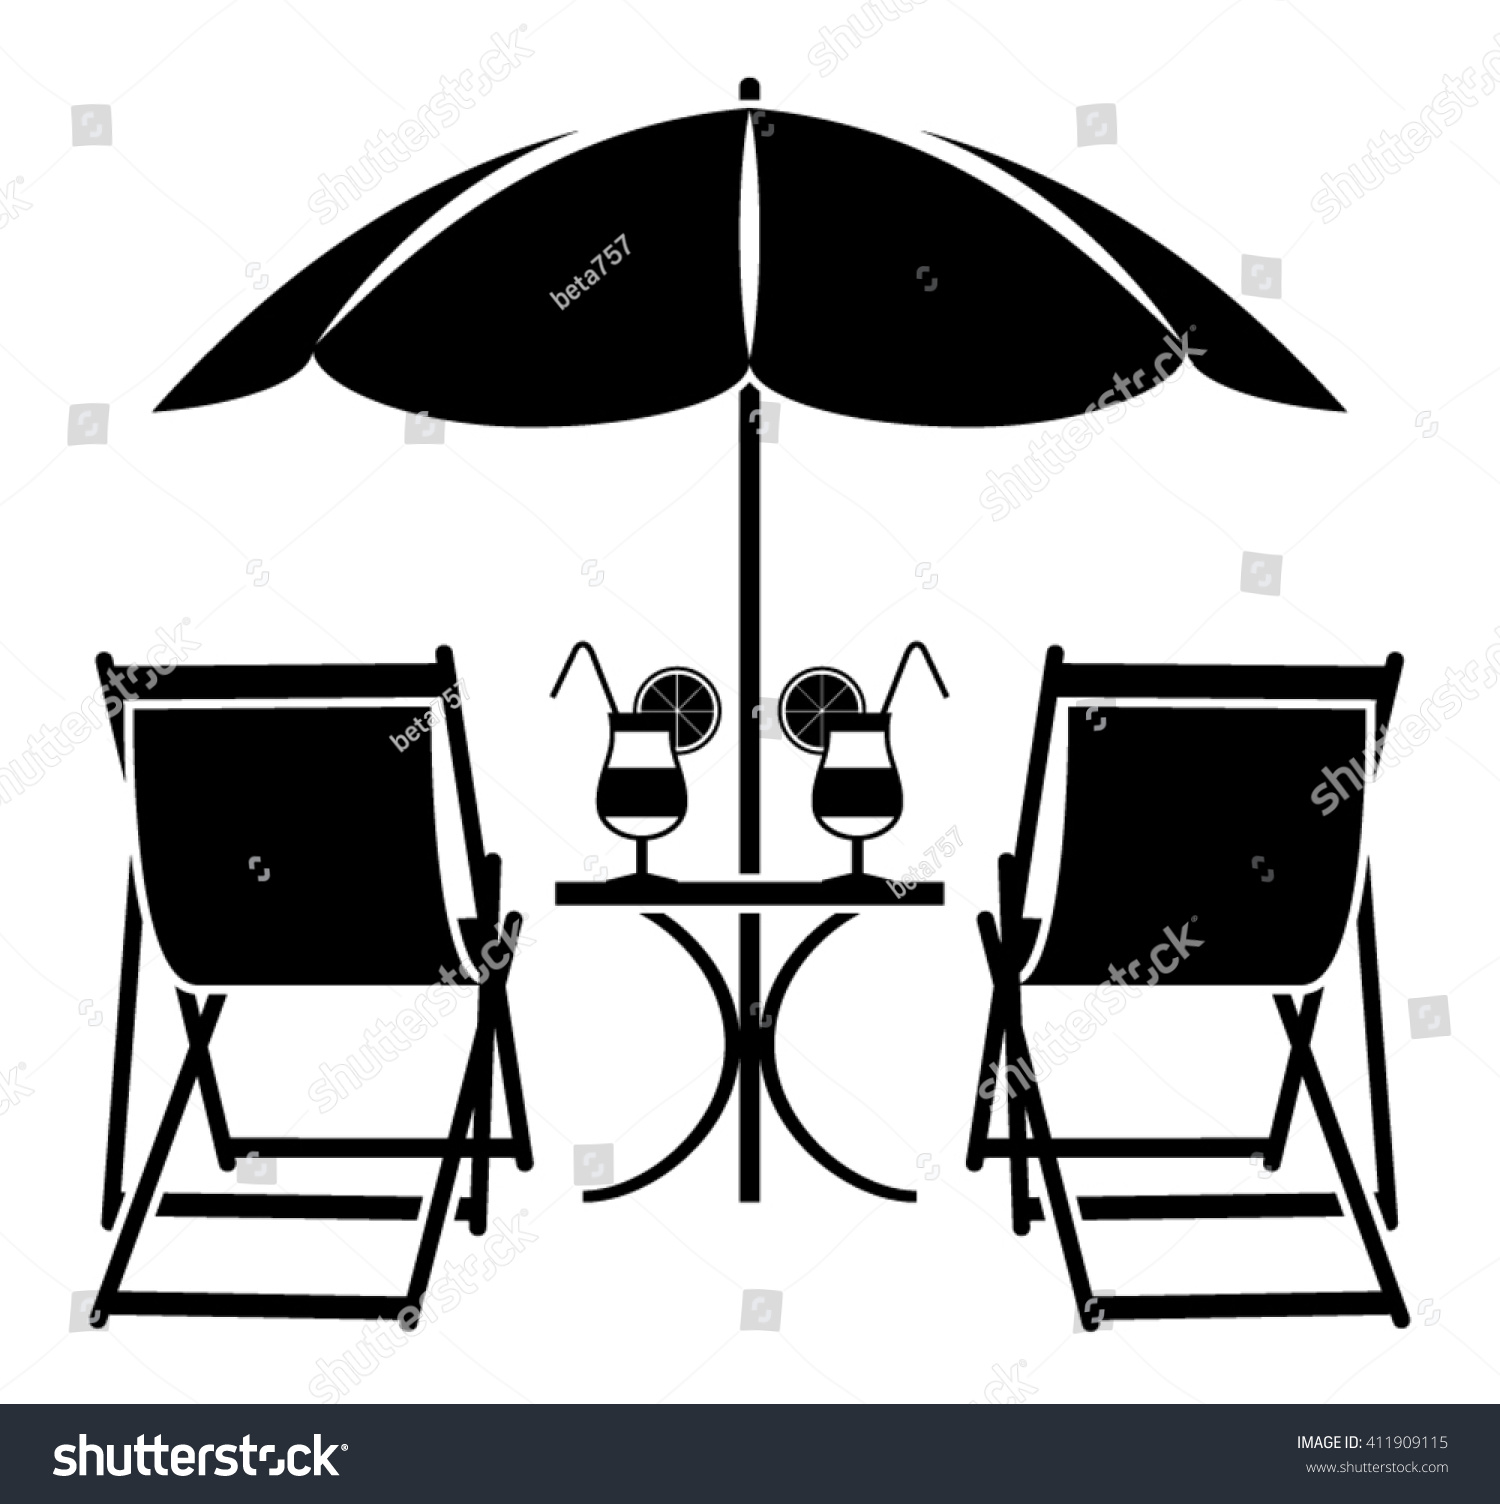 Beach chair and umbrella black and white - Vector Beach Umbrella Deck Chairs And Summer Cocktails Isolated On White Background